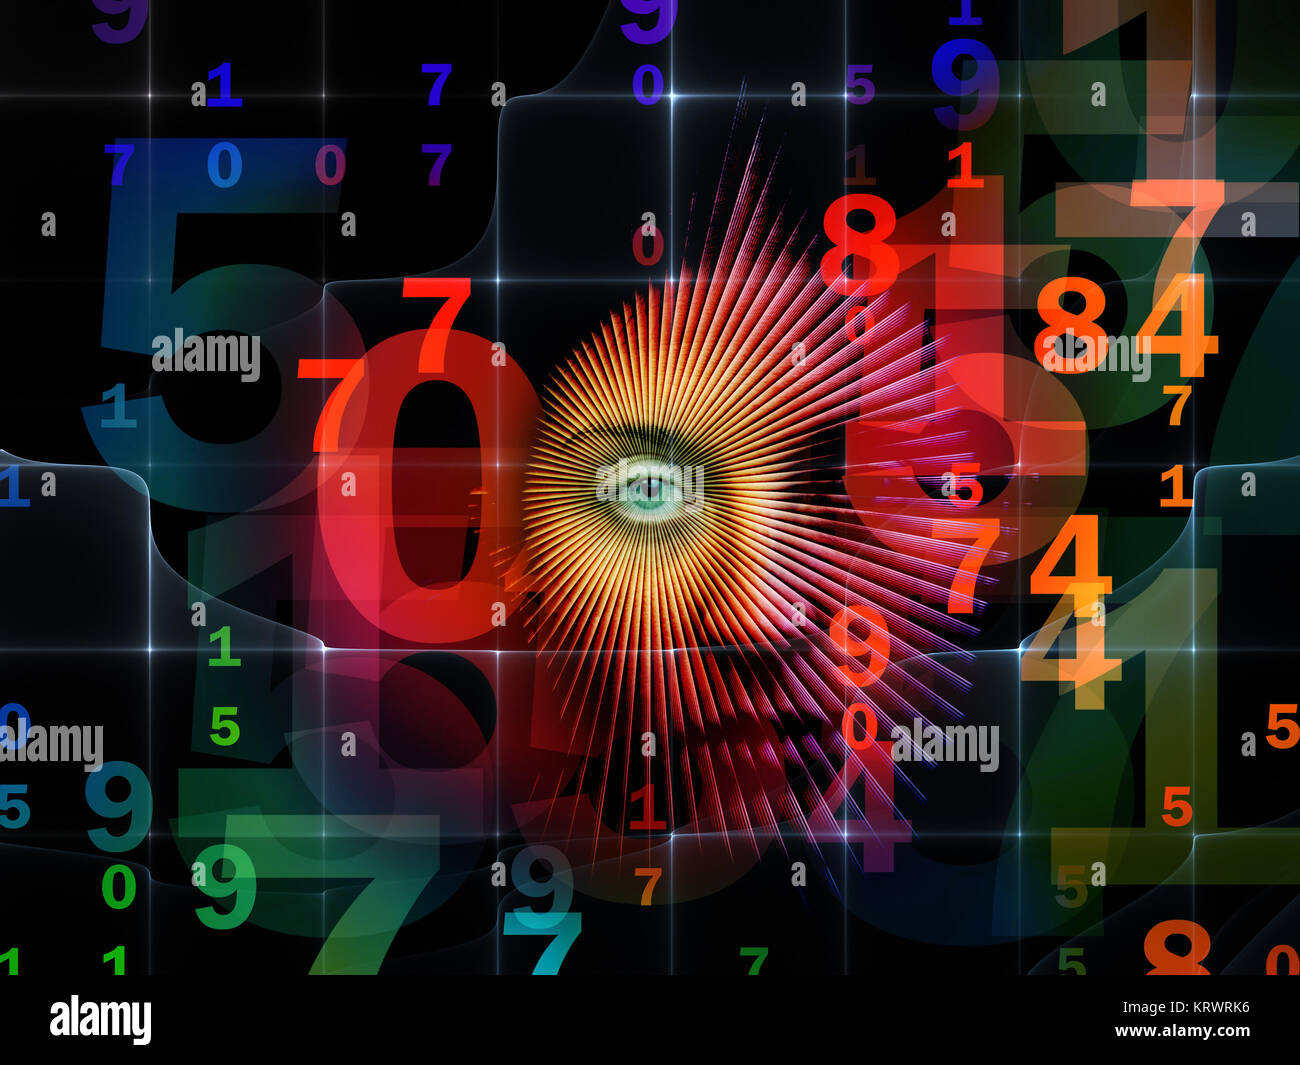 Conceptual World of Numbers - Stock Image